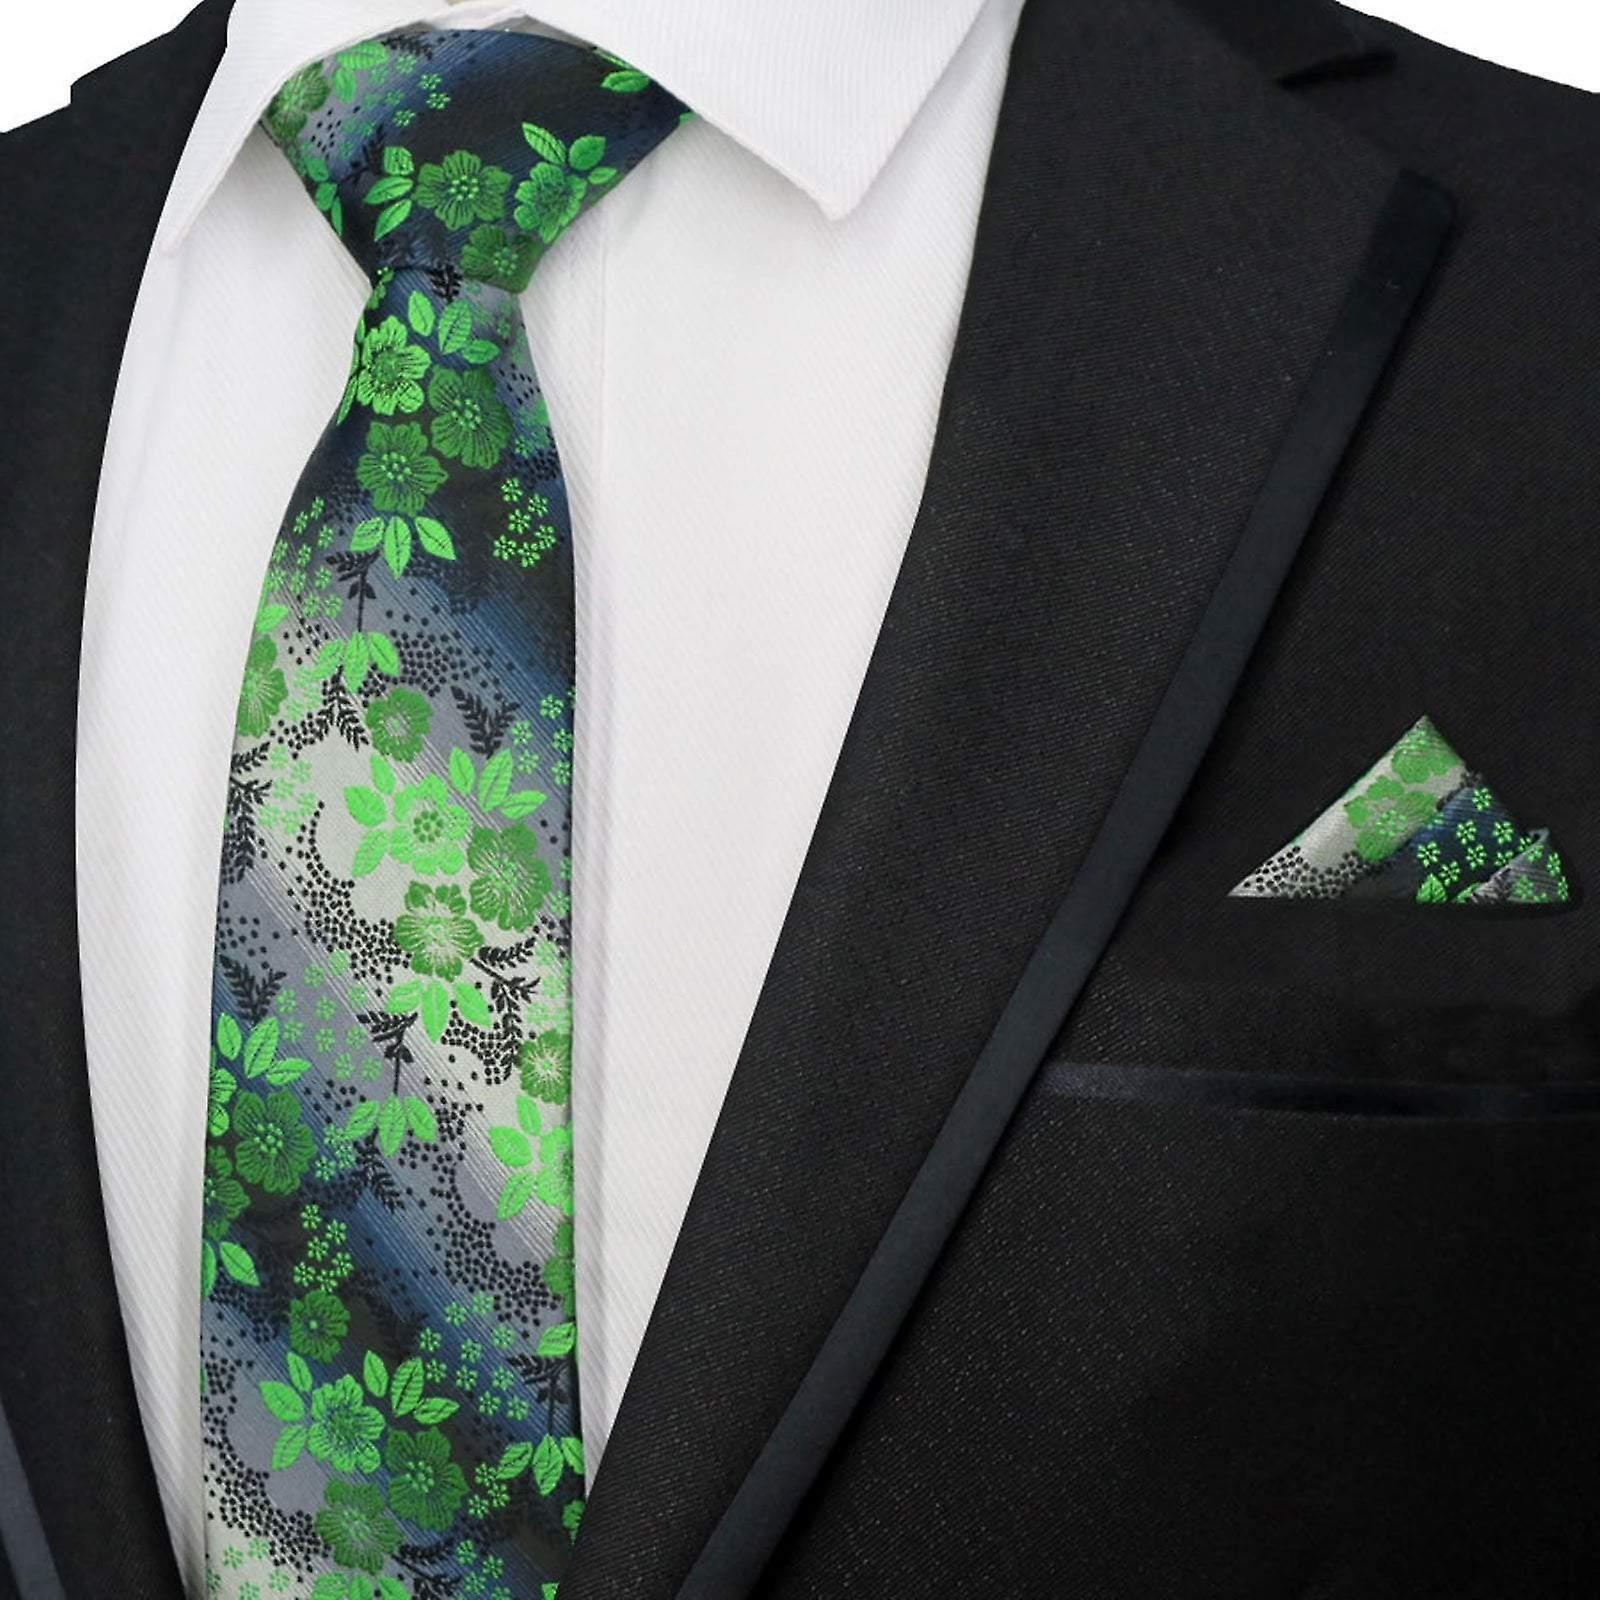 Green & grey floral pattern necktie & pocket square set